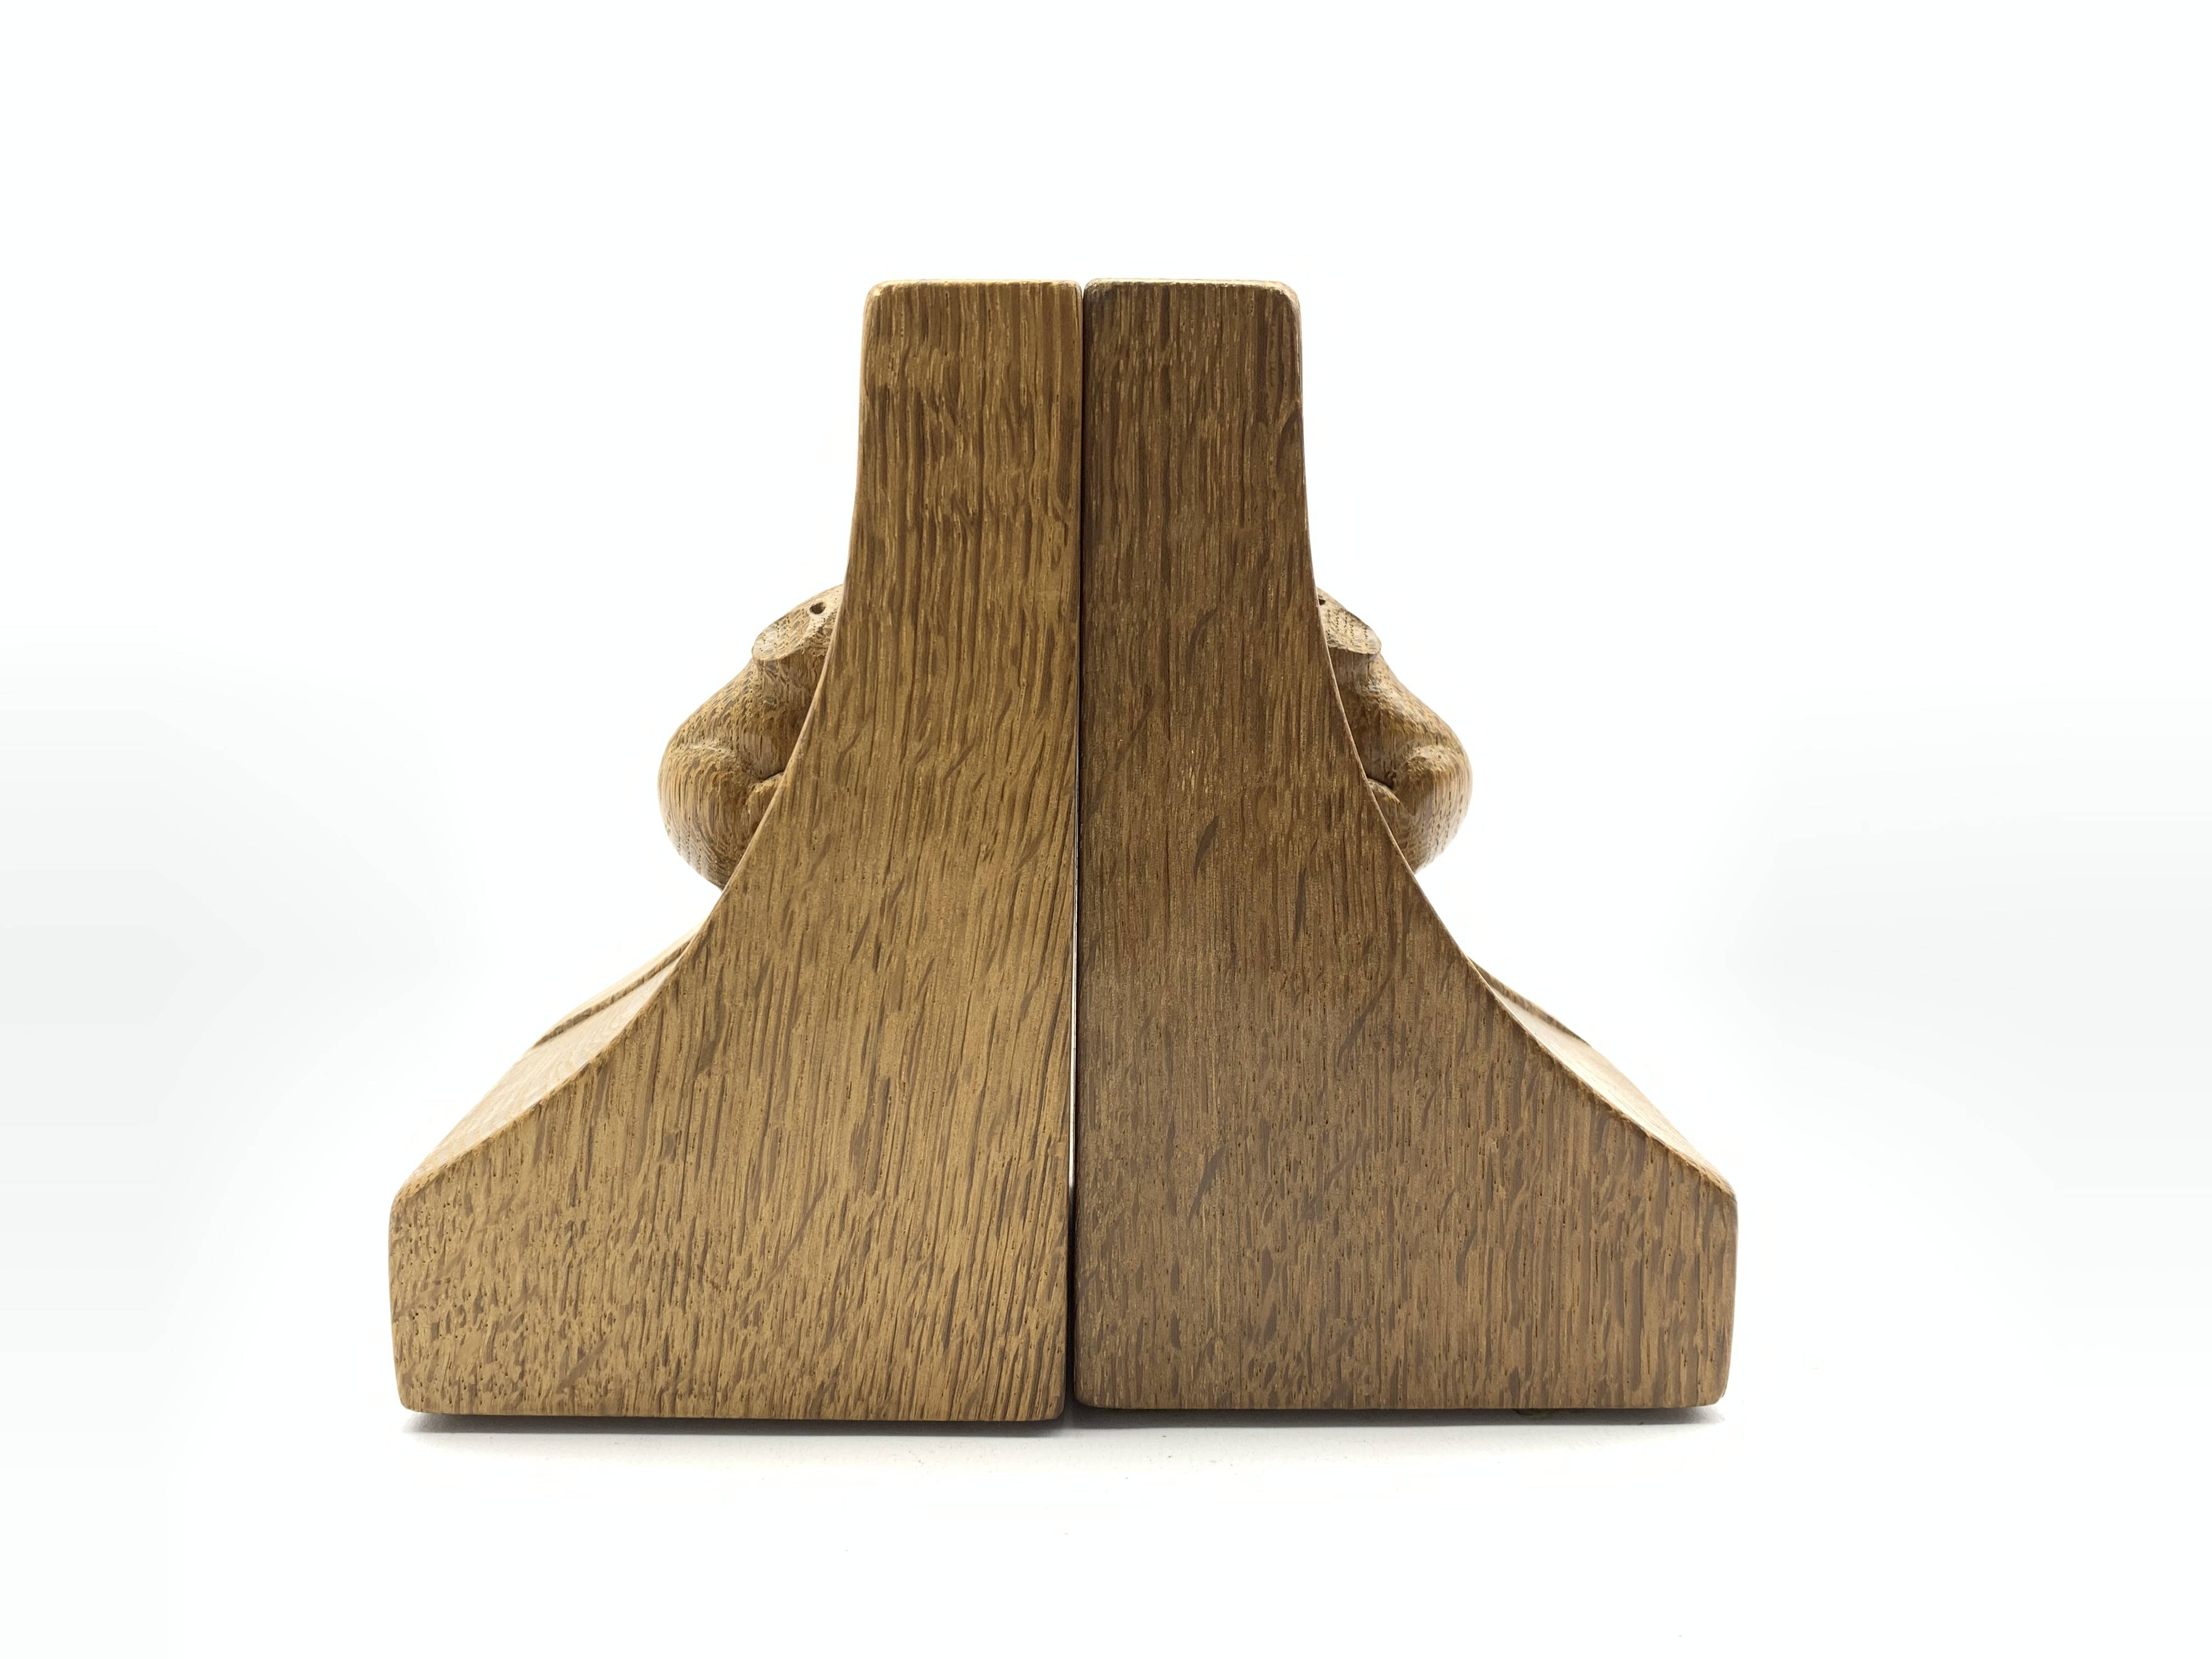 Pair of Thompson of Kilburn 'Mouseman' adzed oak bookends with carved mouse signature to each end H1 - Image 5 of 7